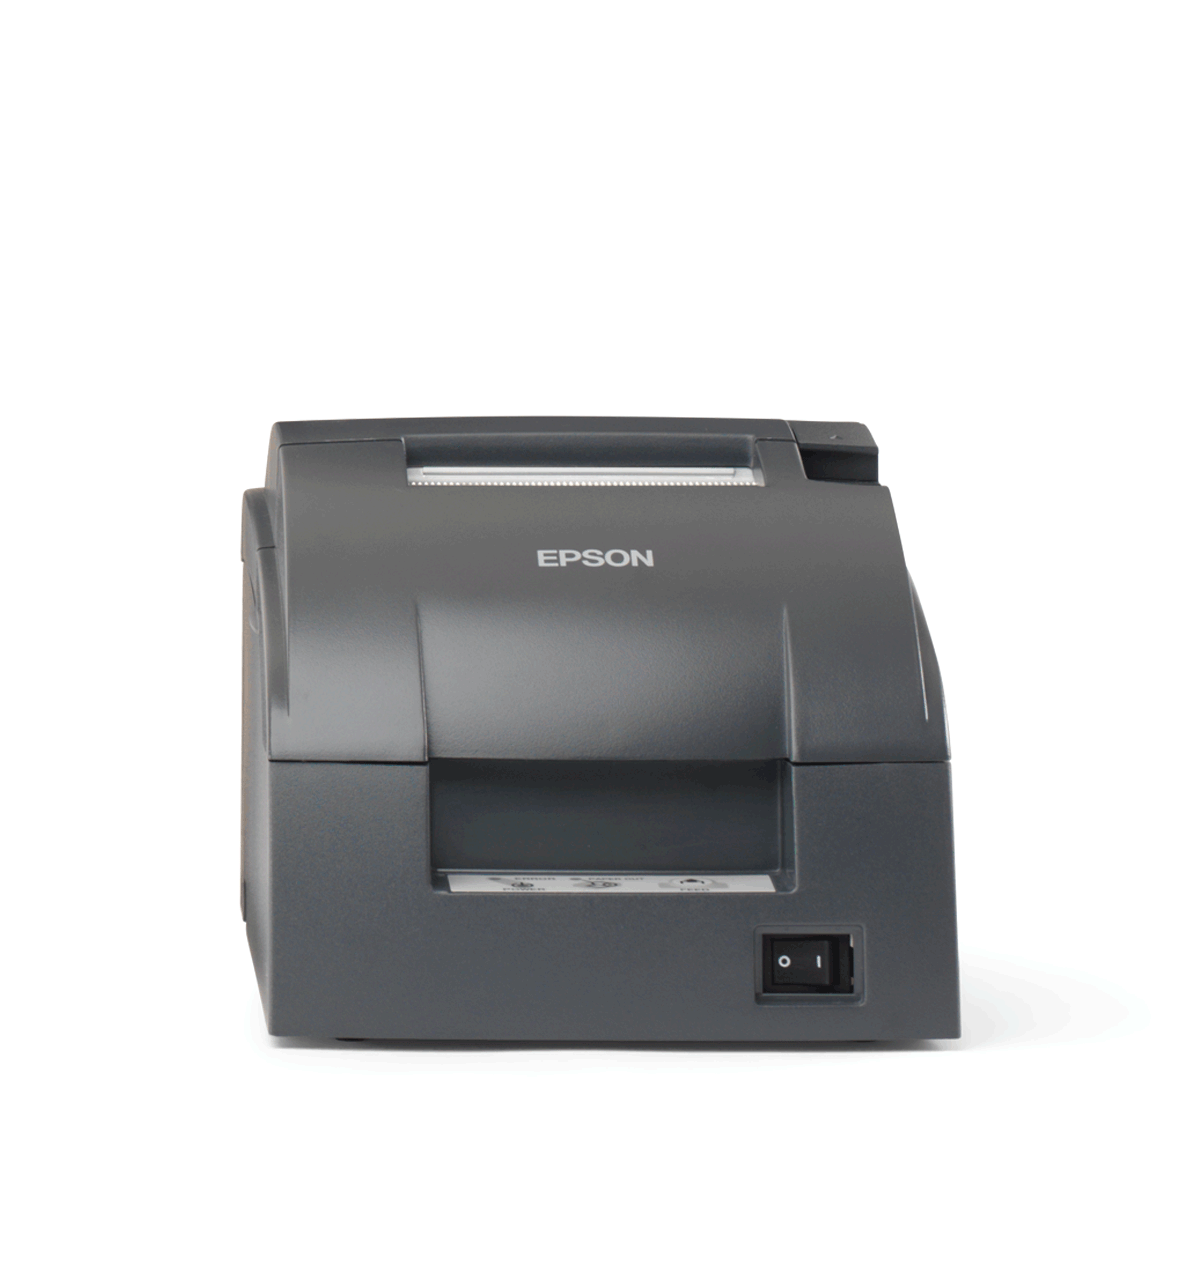 EPSON TM-U220B PRINTER WINDOWS 7 DRIVERS DOWNLOAD (2019)